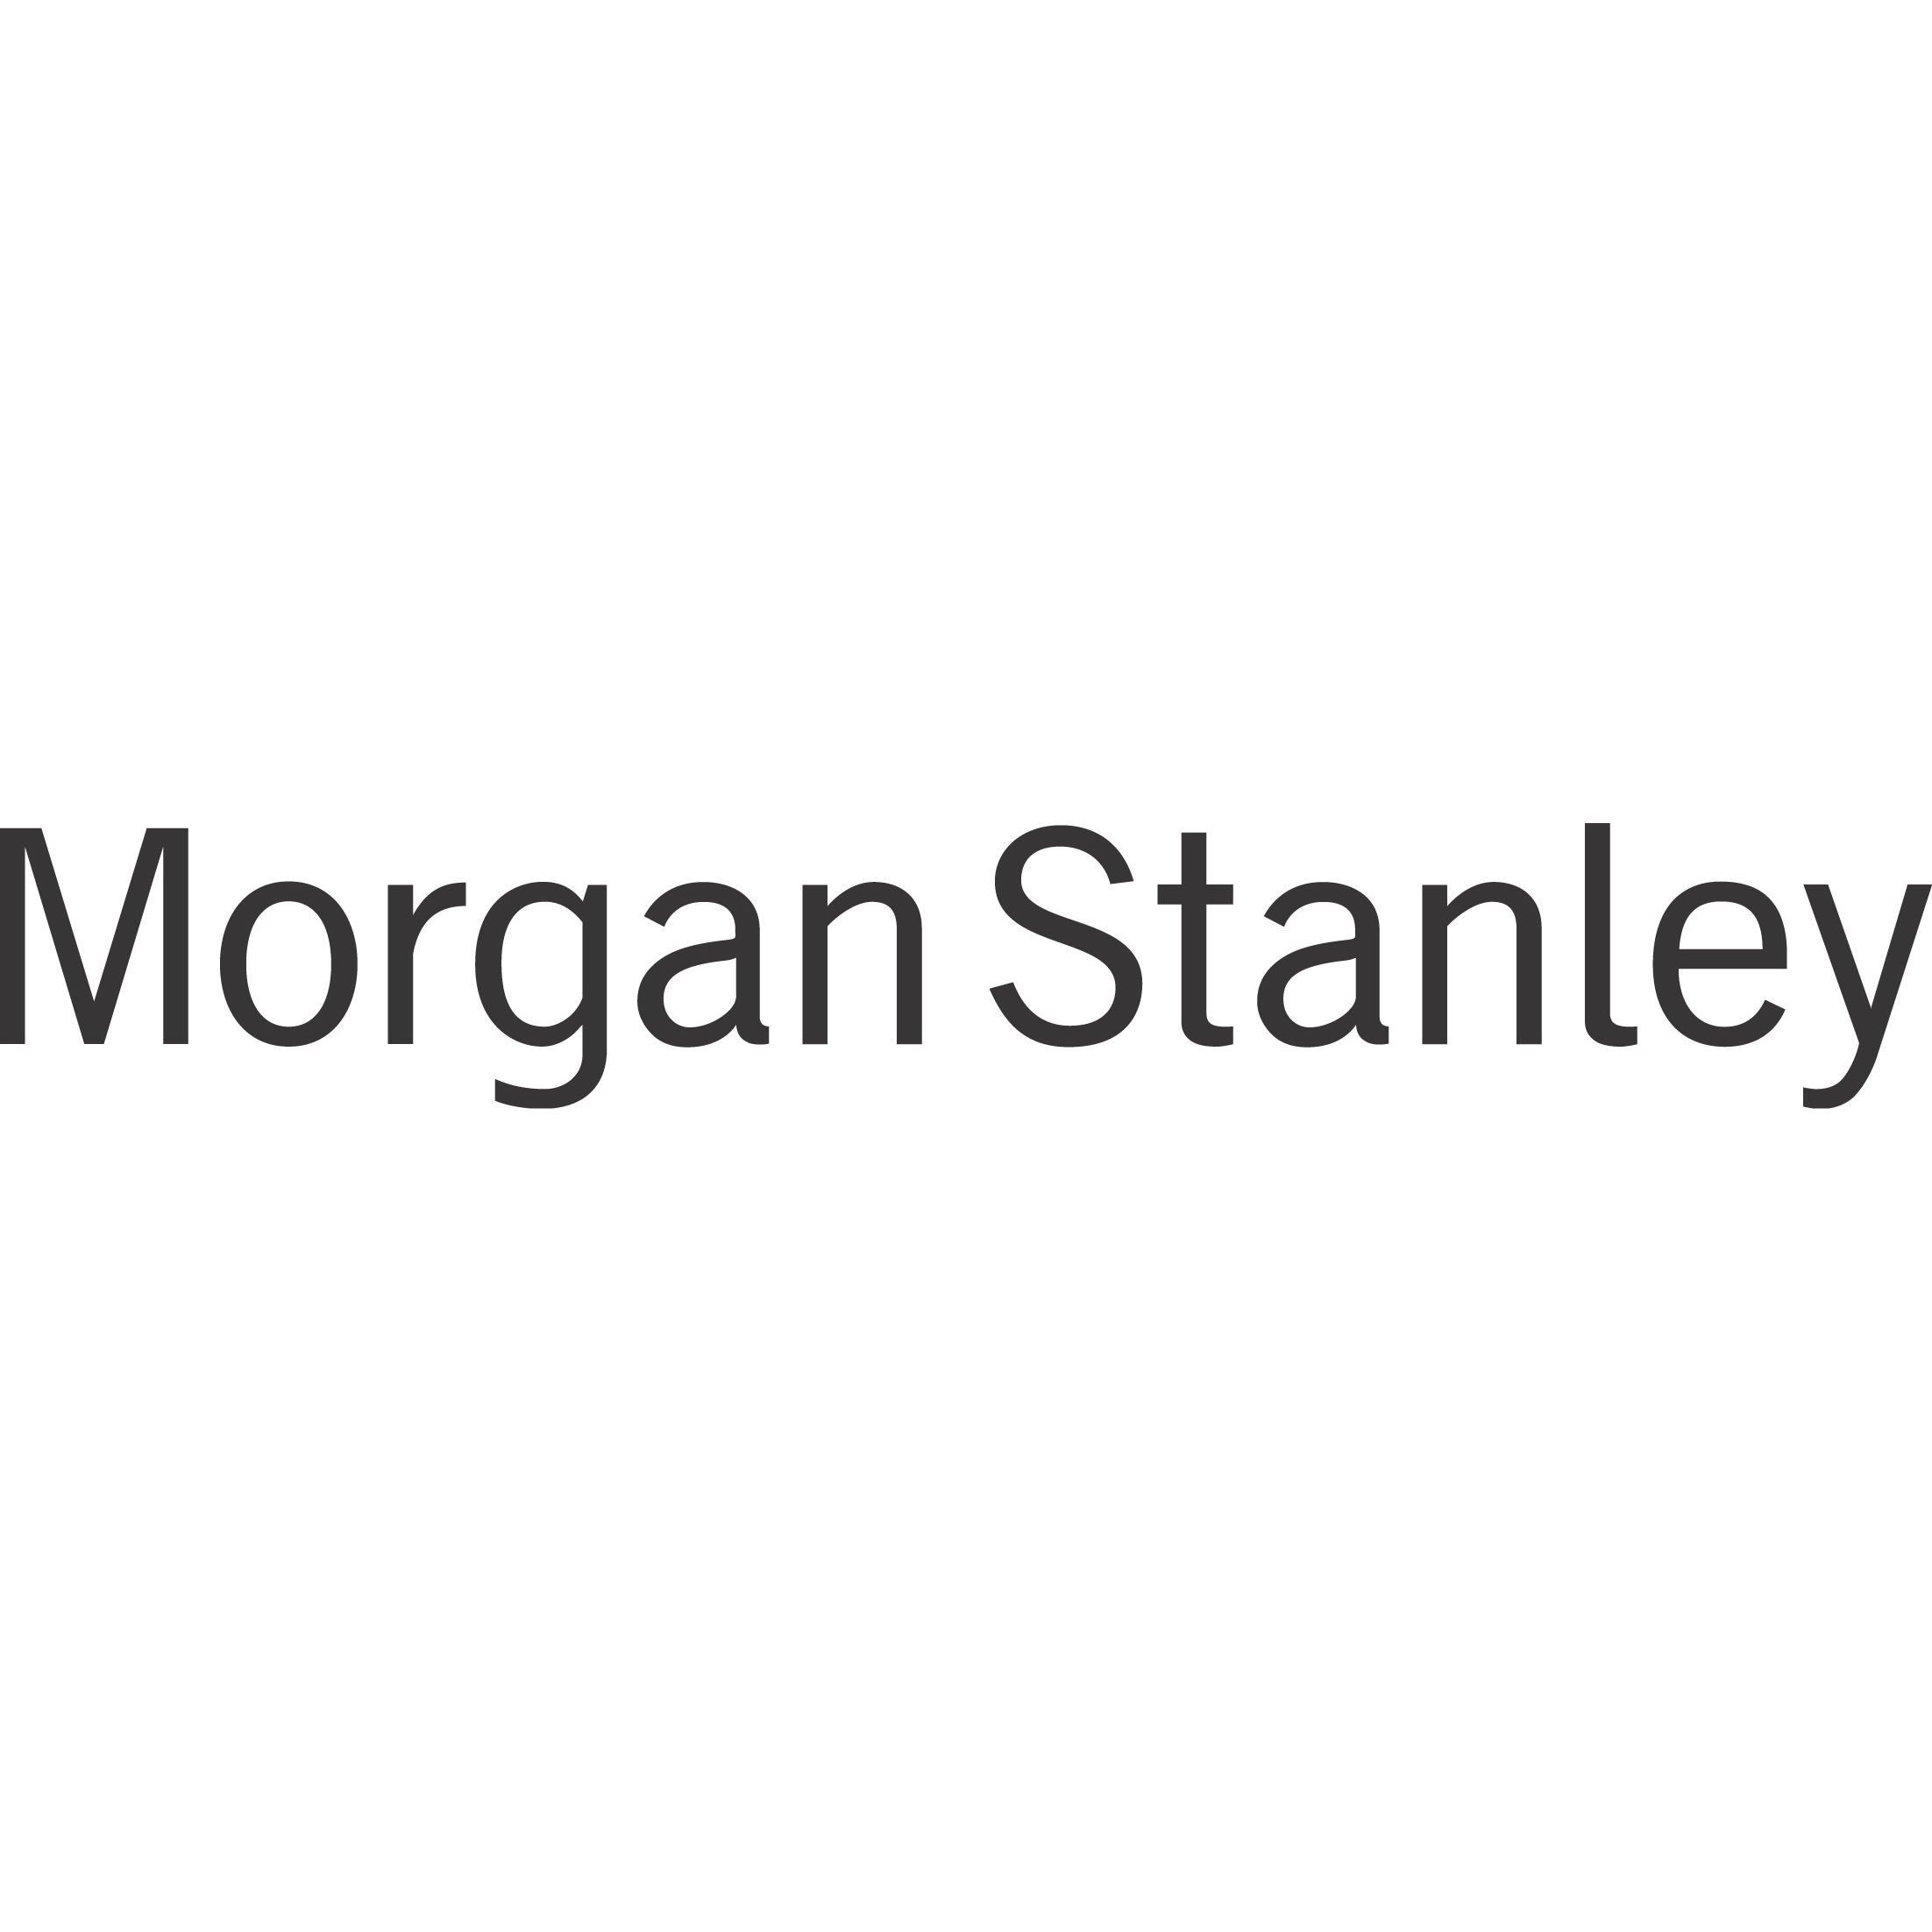 Marty Maugh - Morgan Stanley